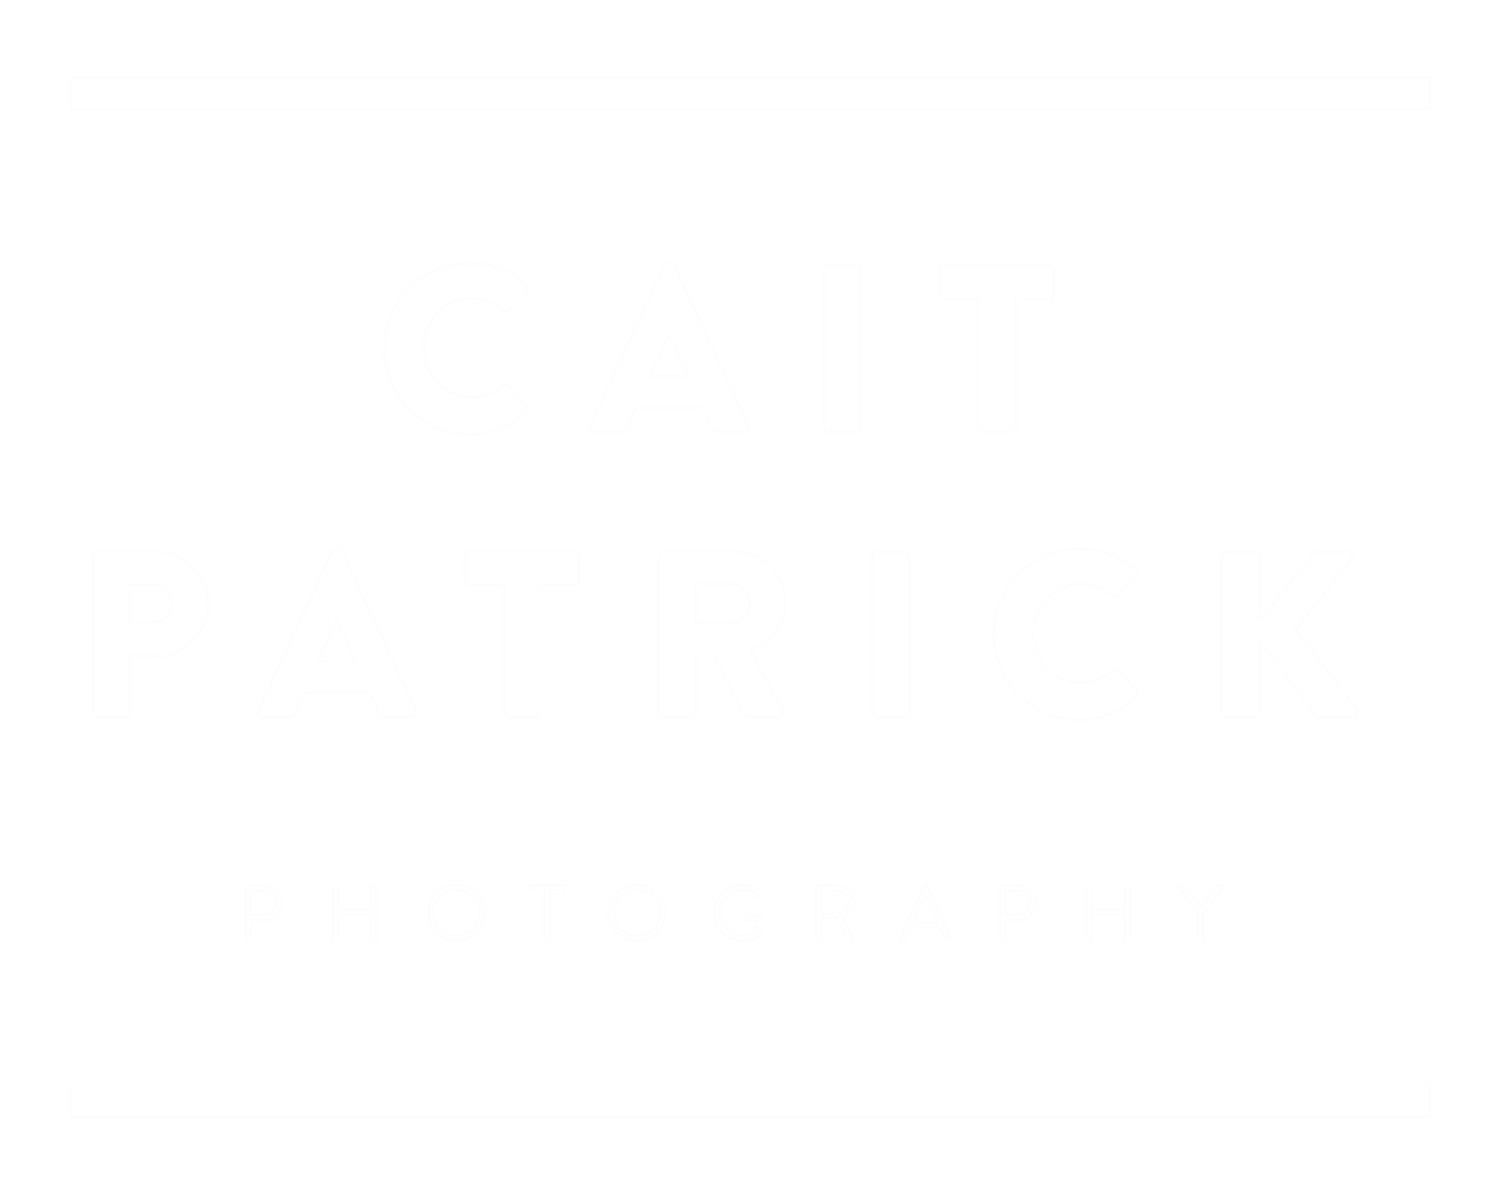 Cait Patrick Photography